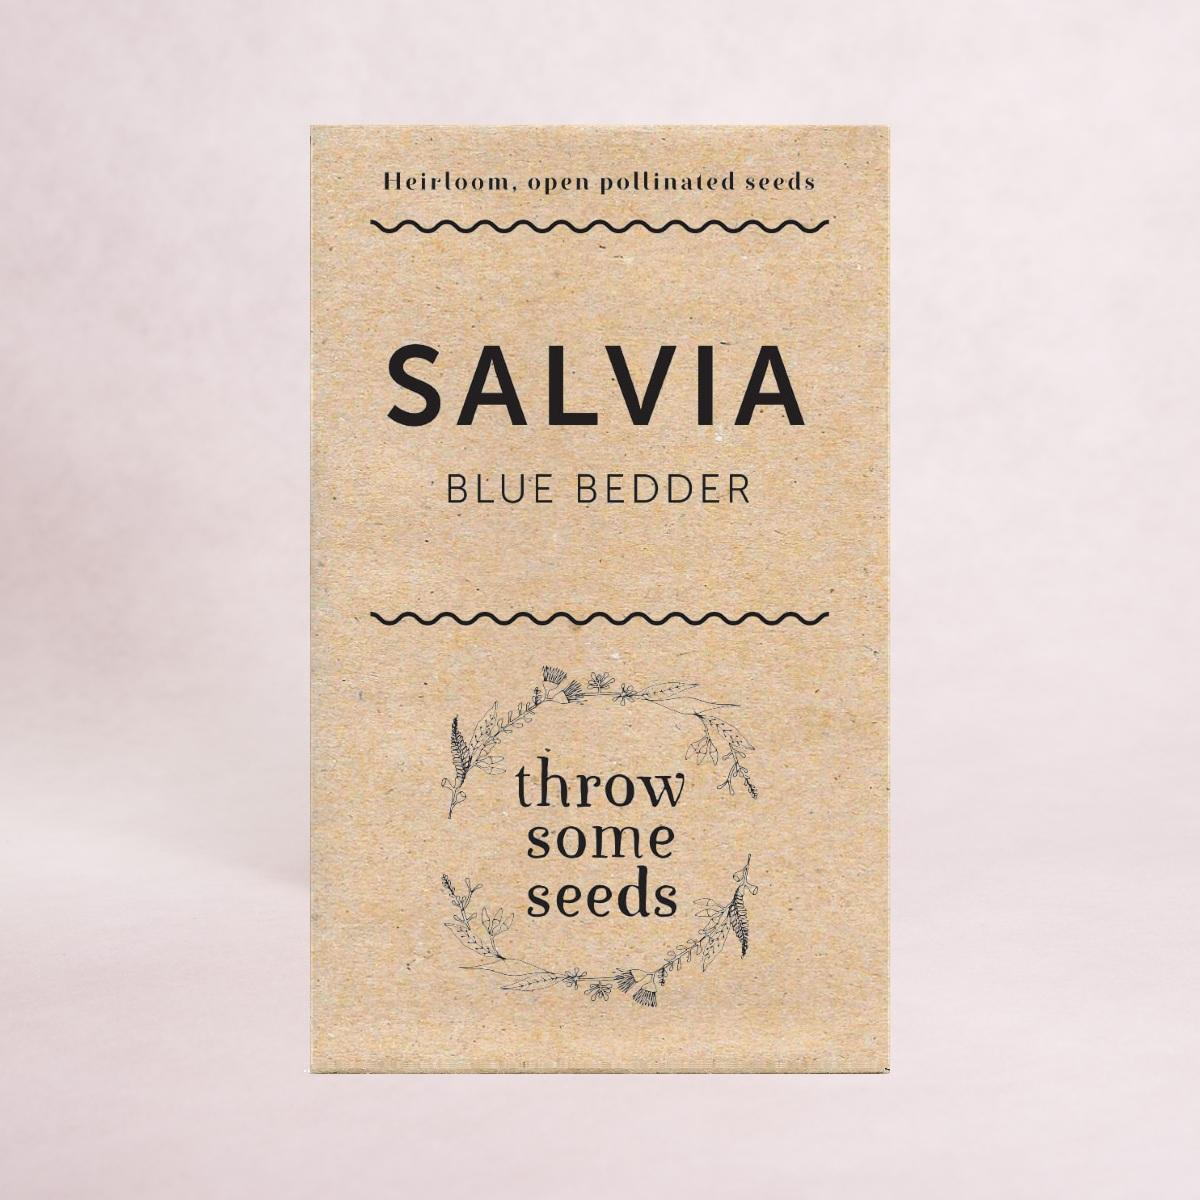 Salvia (Blue Bedder) Seeds - Seeds - Throw Some Seeds - Australian gardening gifts and eco products online!